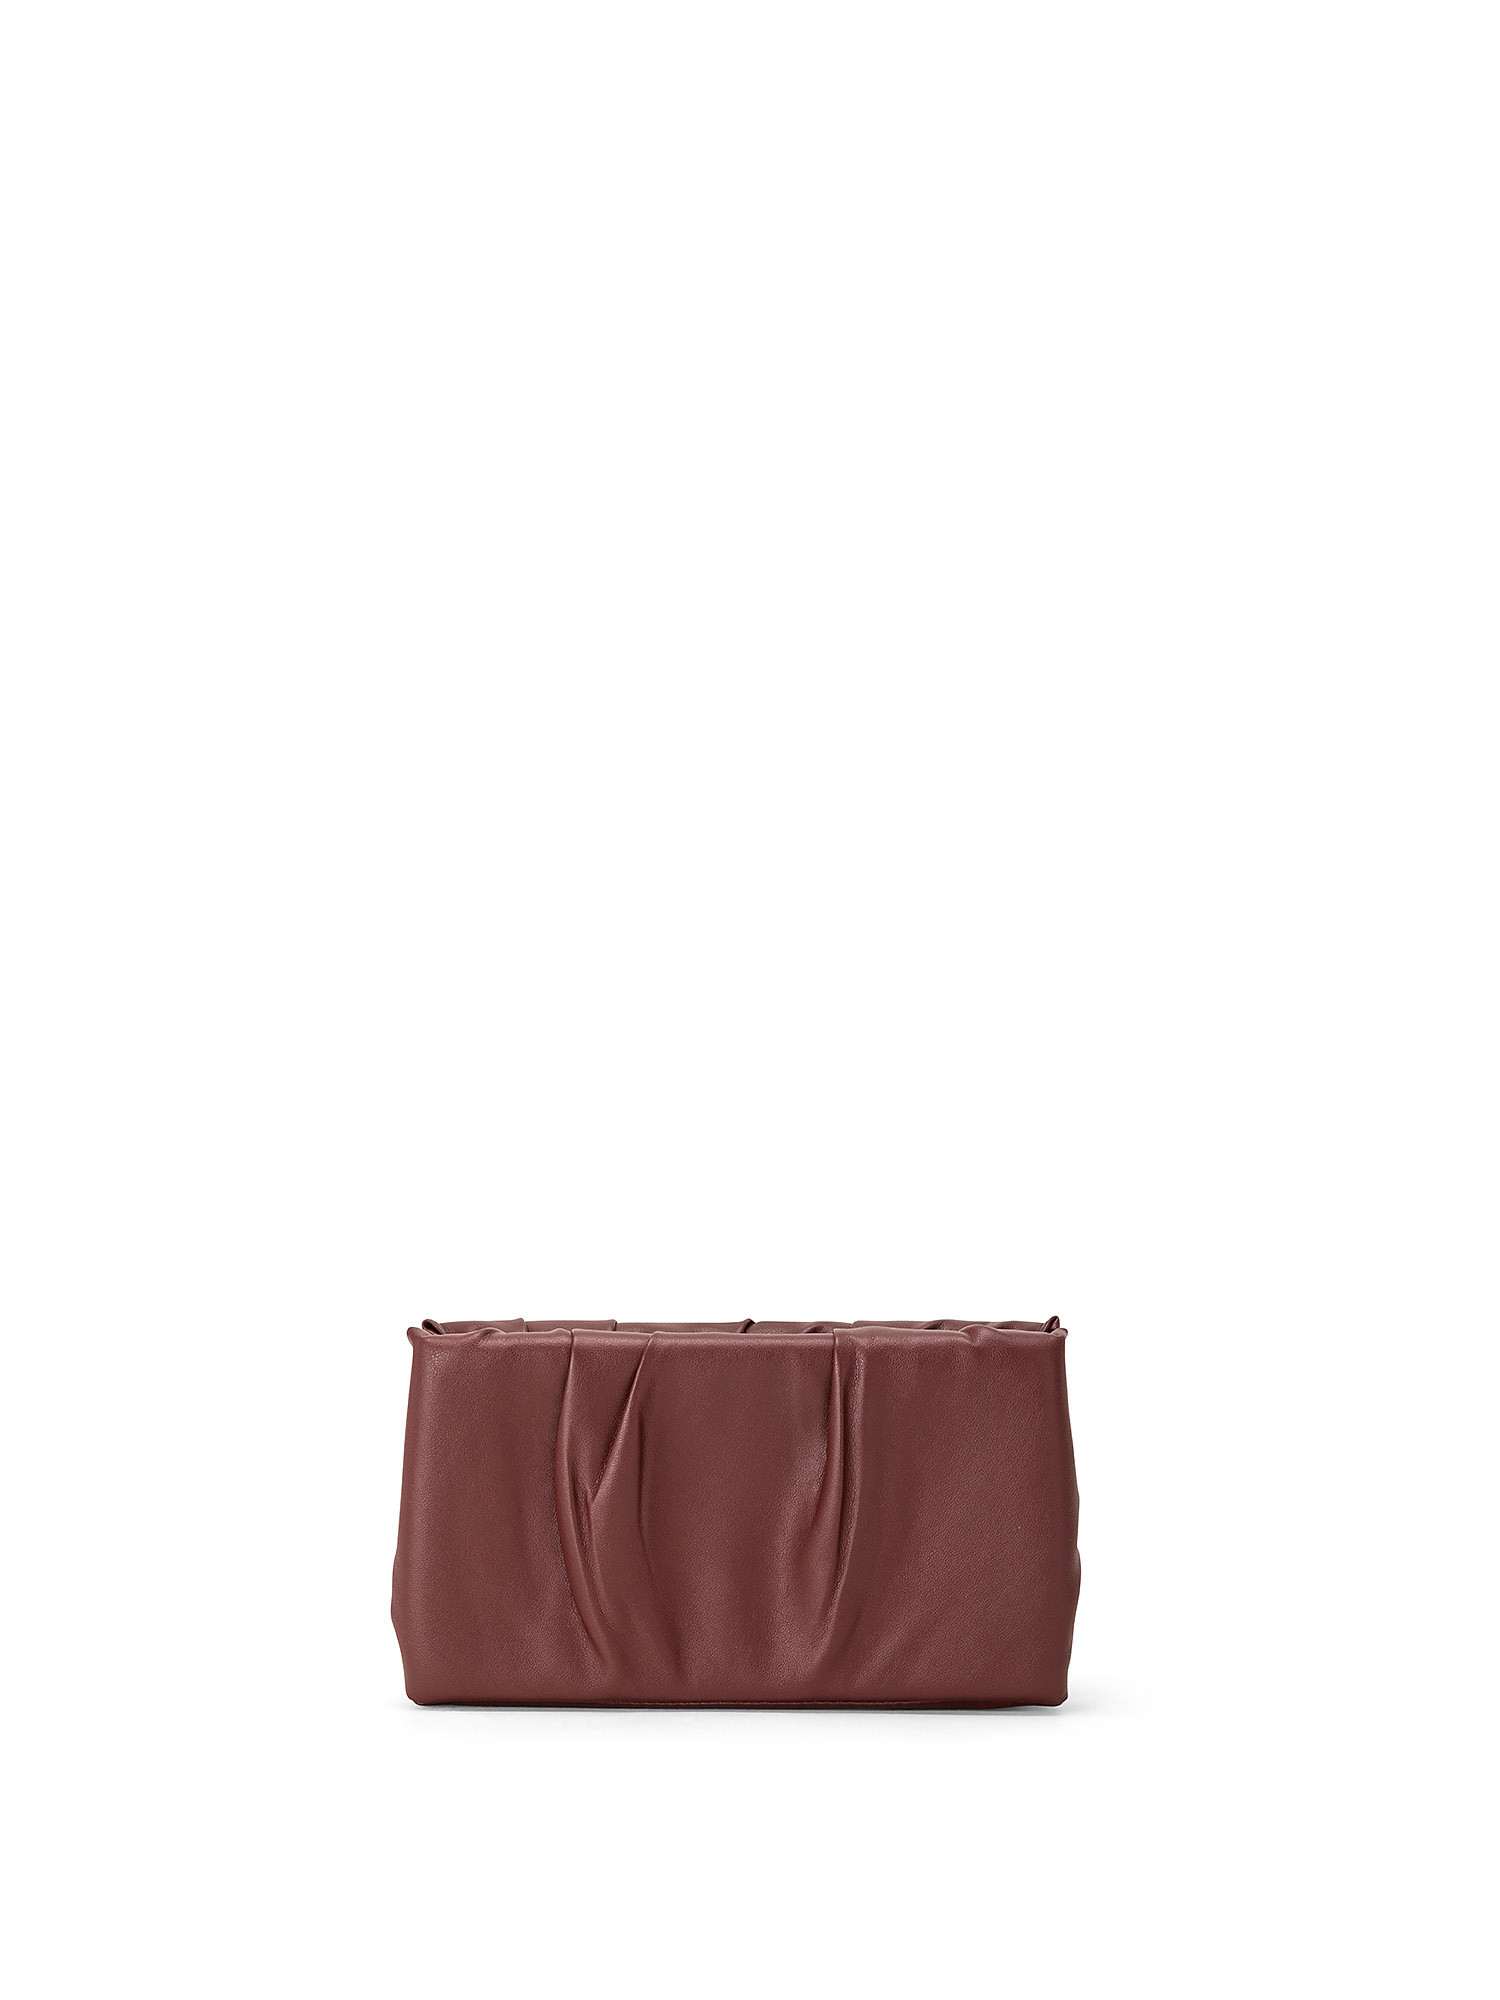 Ruched Frame Clutch, Rosso ciliegia, large image number 0